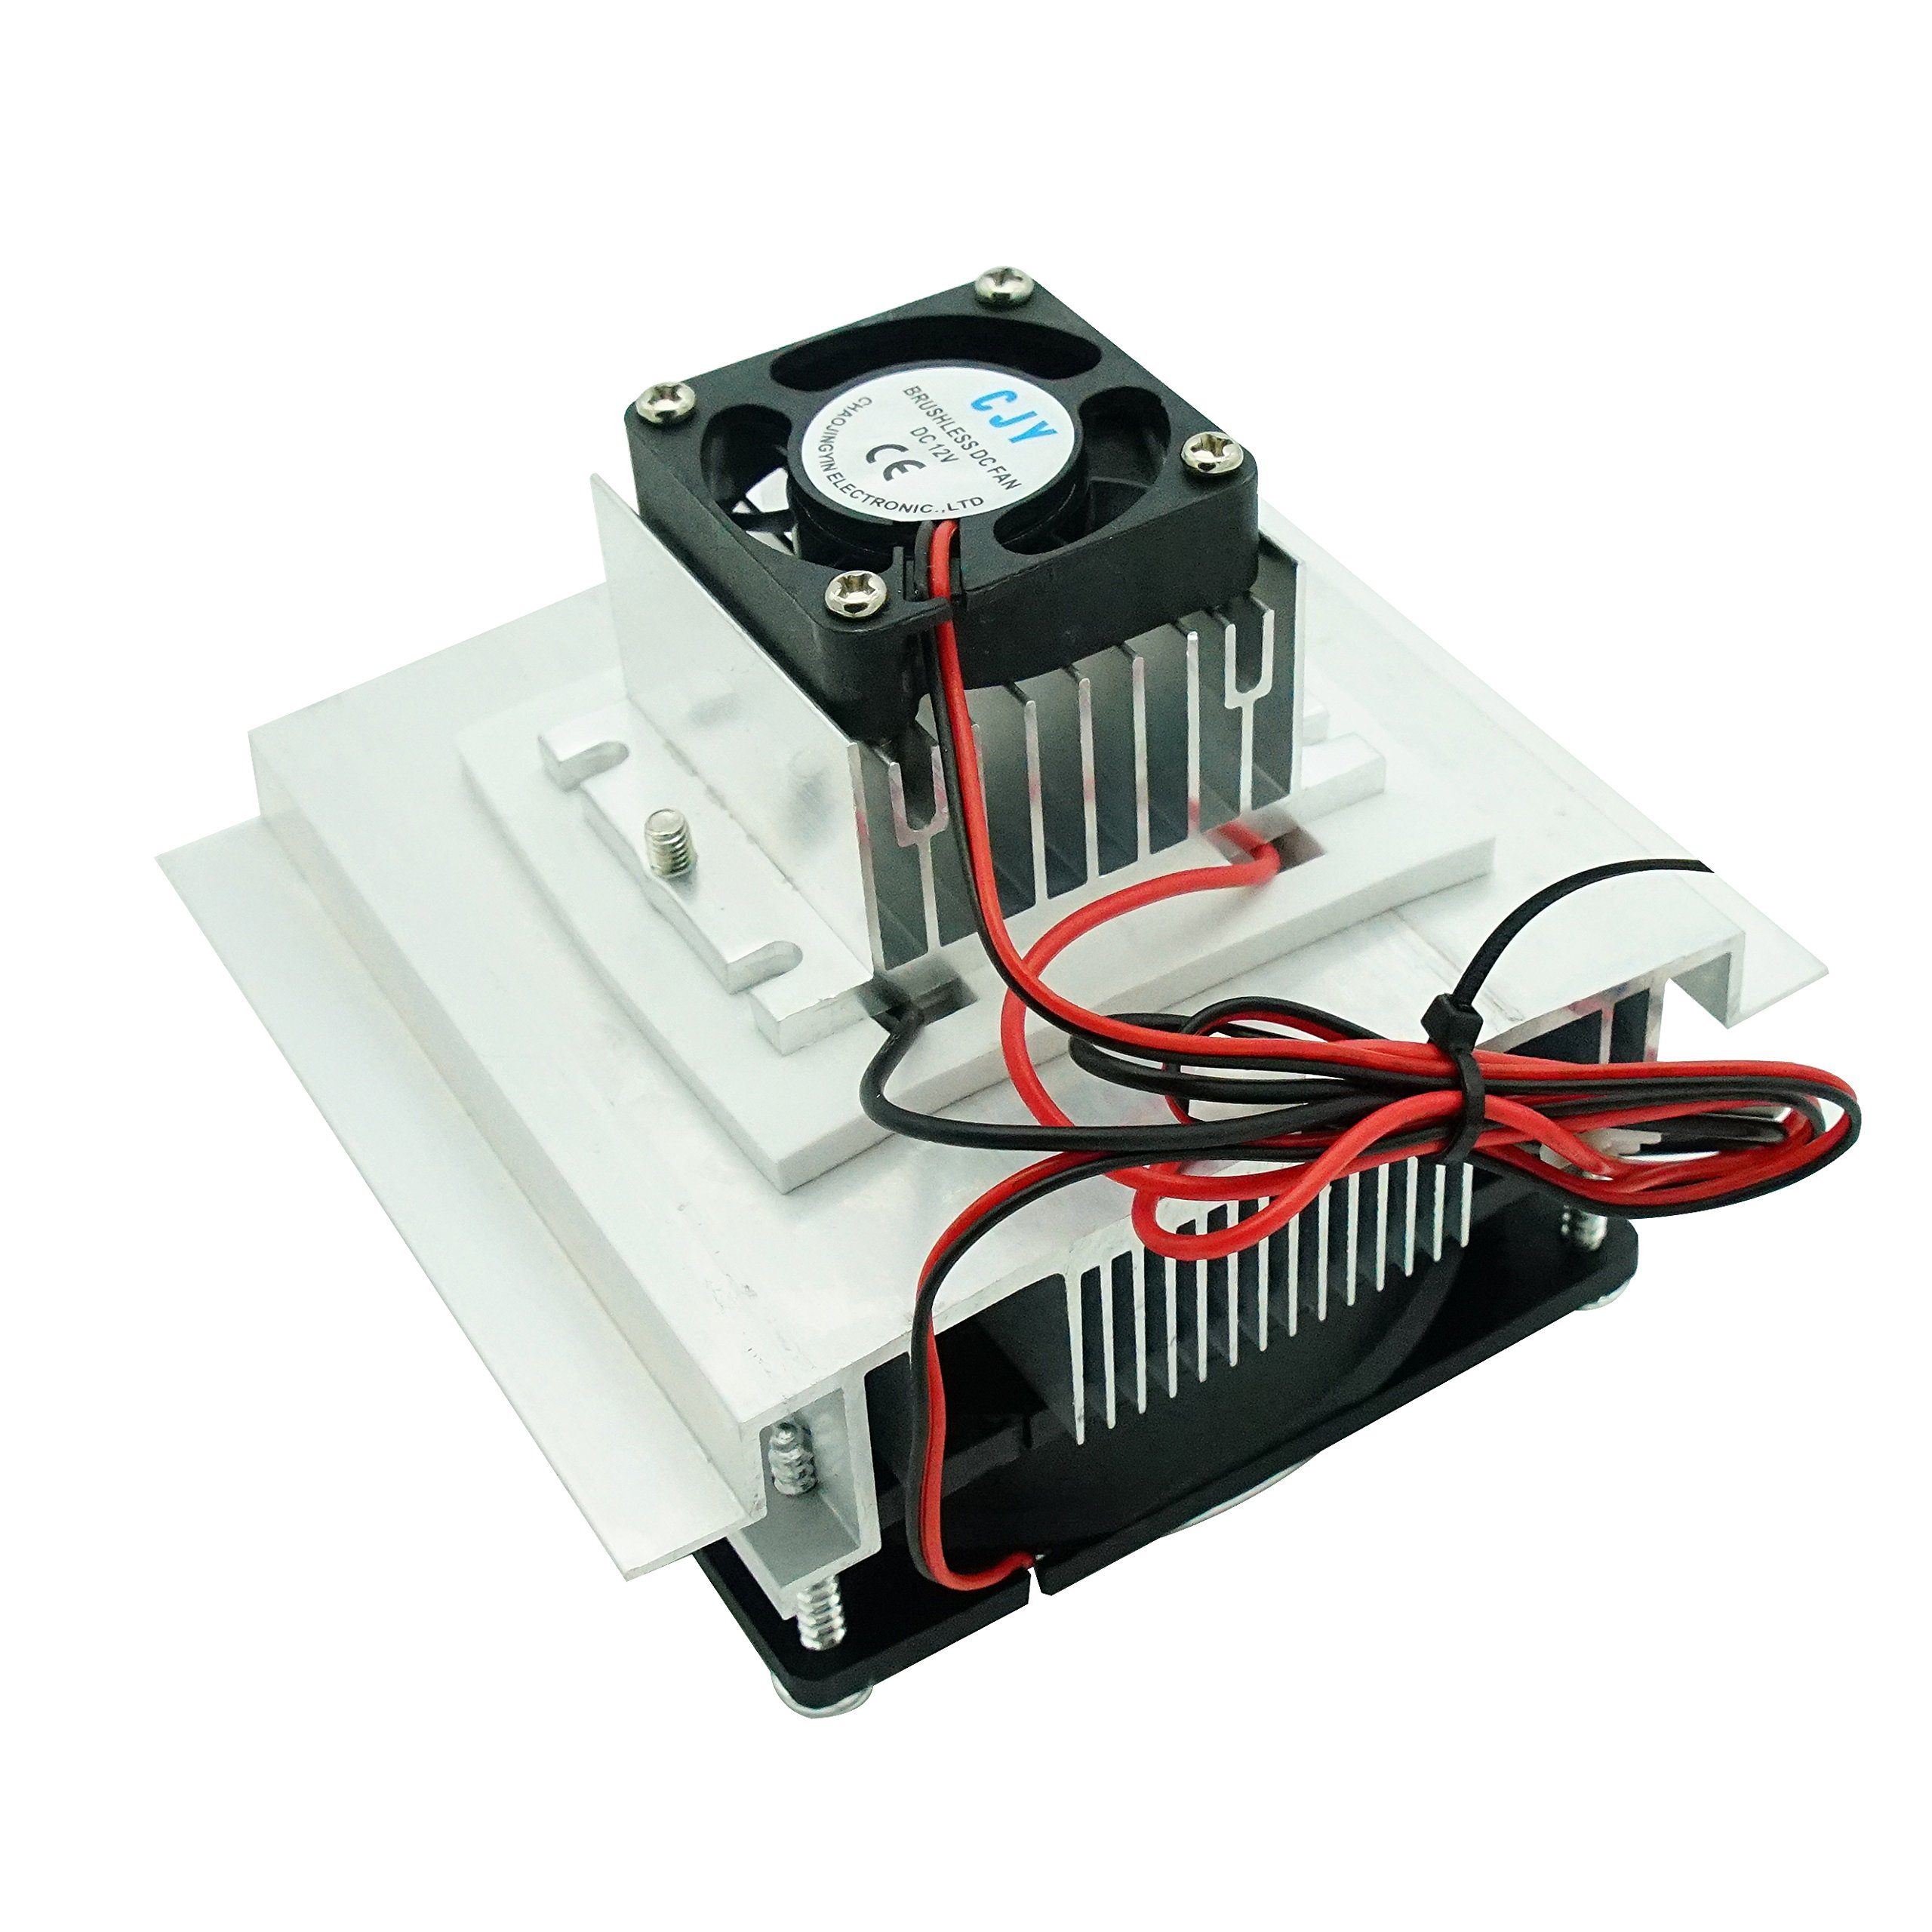 GeekTeches Thermoelectric Peltier Refrigeration Cooling System, Radiator Semiconductor Cooler Conduction Module Fan